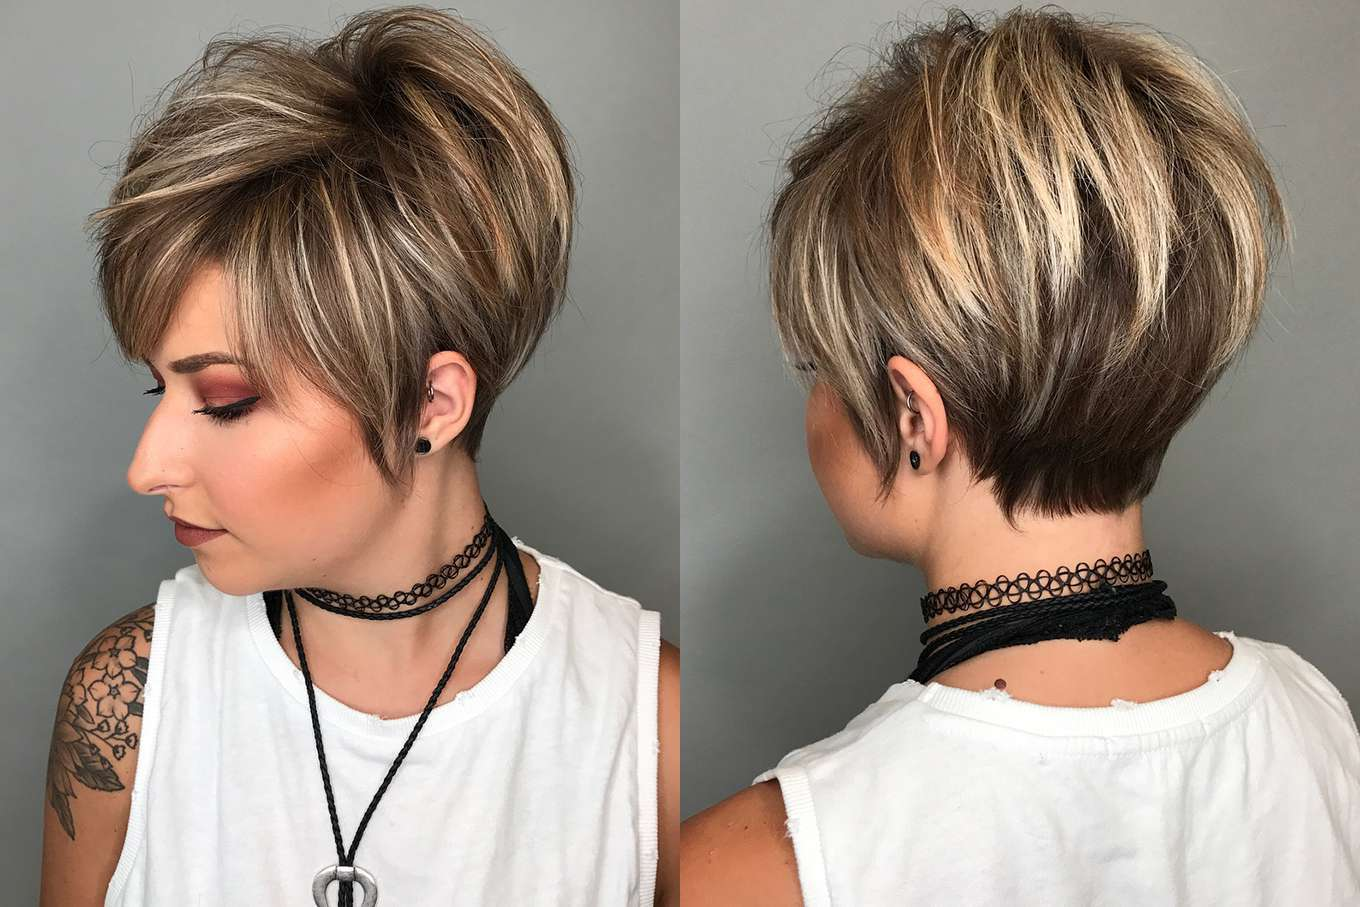 30 Popular Hairstyles for Women Over 50 – Styles Hairstyles for 2019 picture